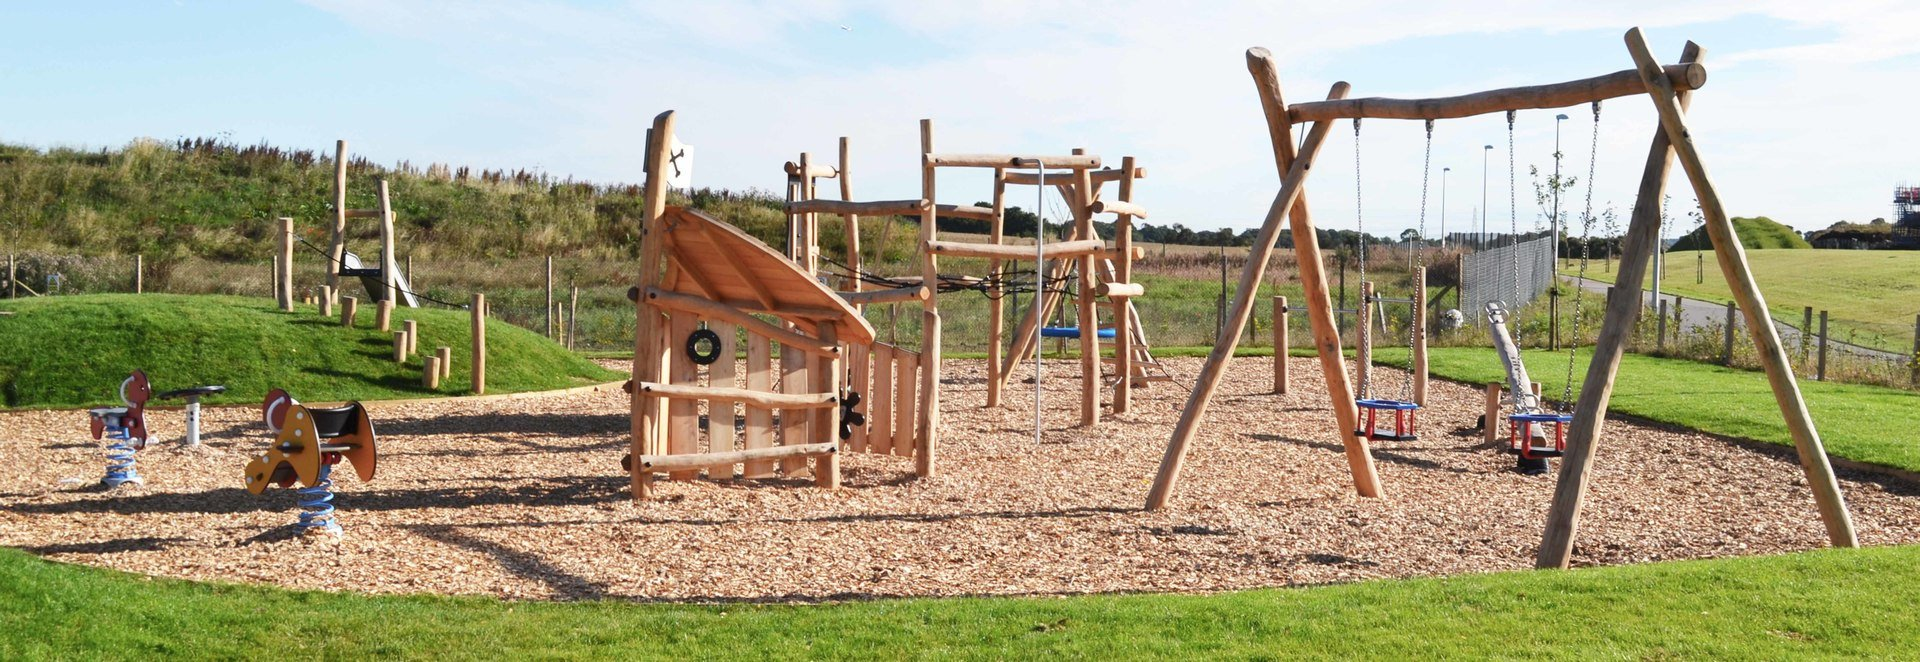 Calderwood Play Area, West Lothian